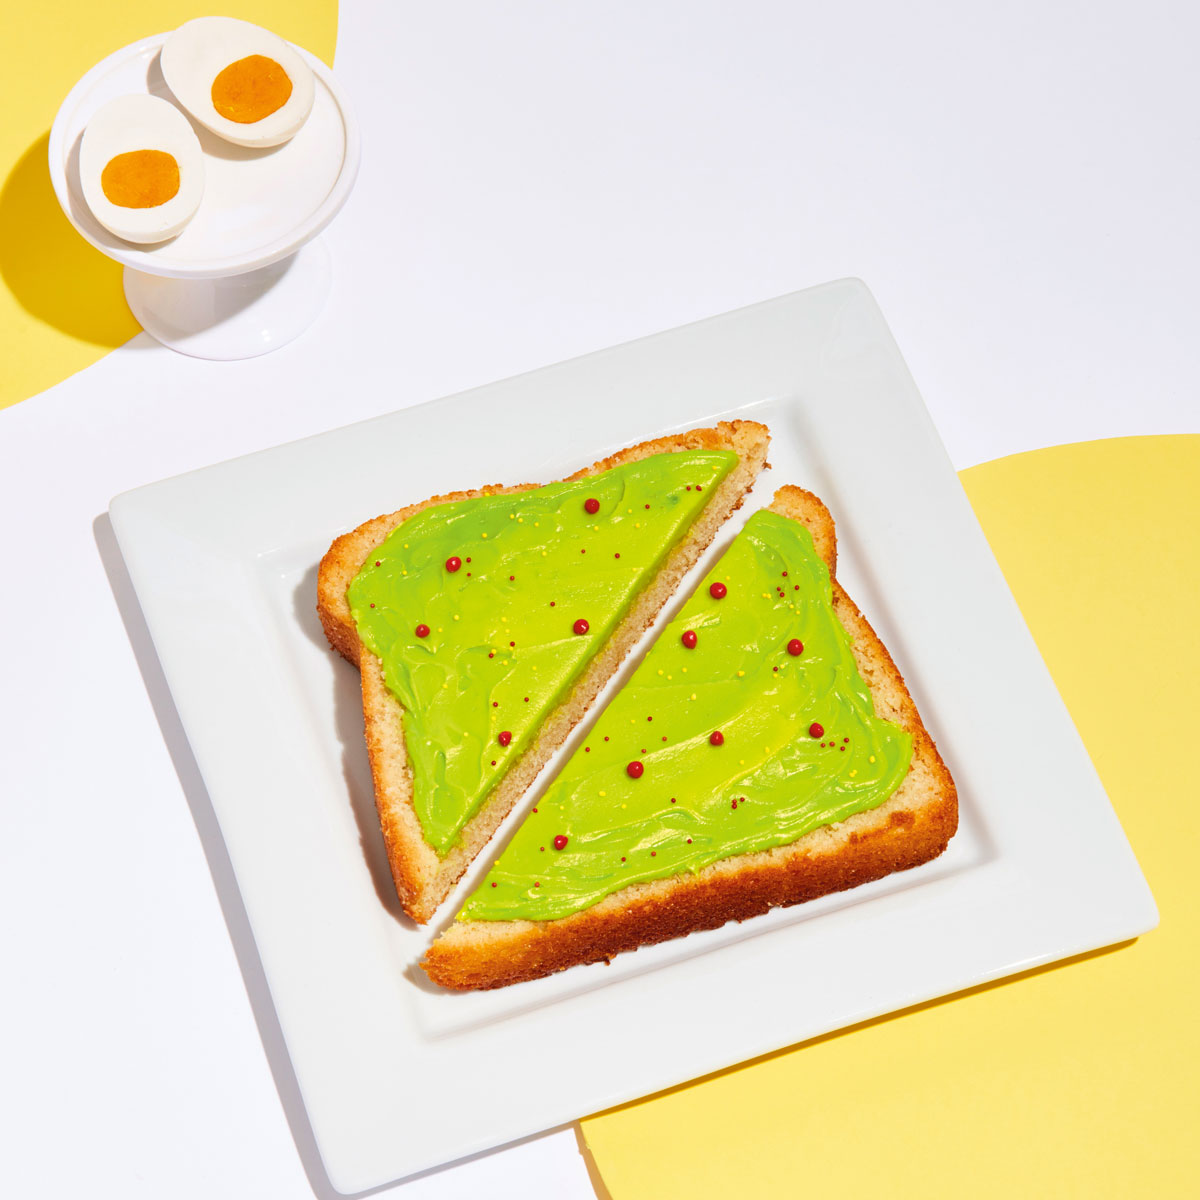 avo toast cake from the Power of Sprinkles cookbook